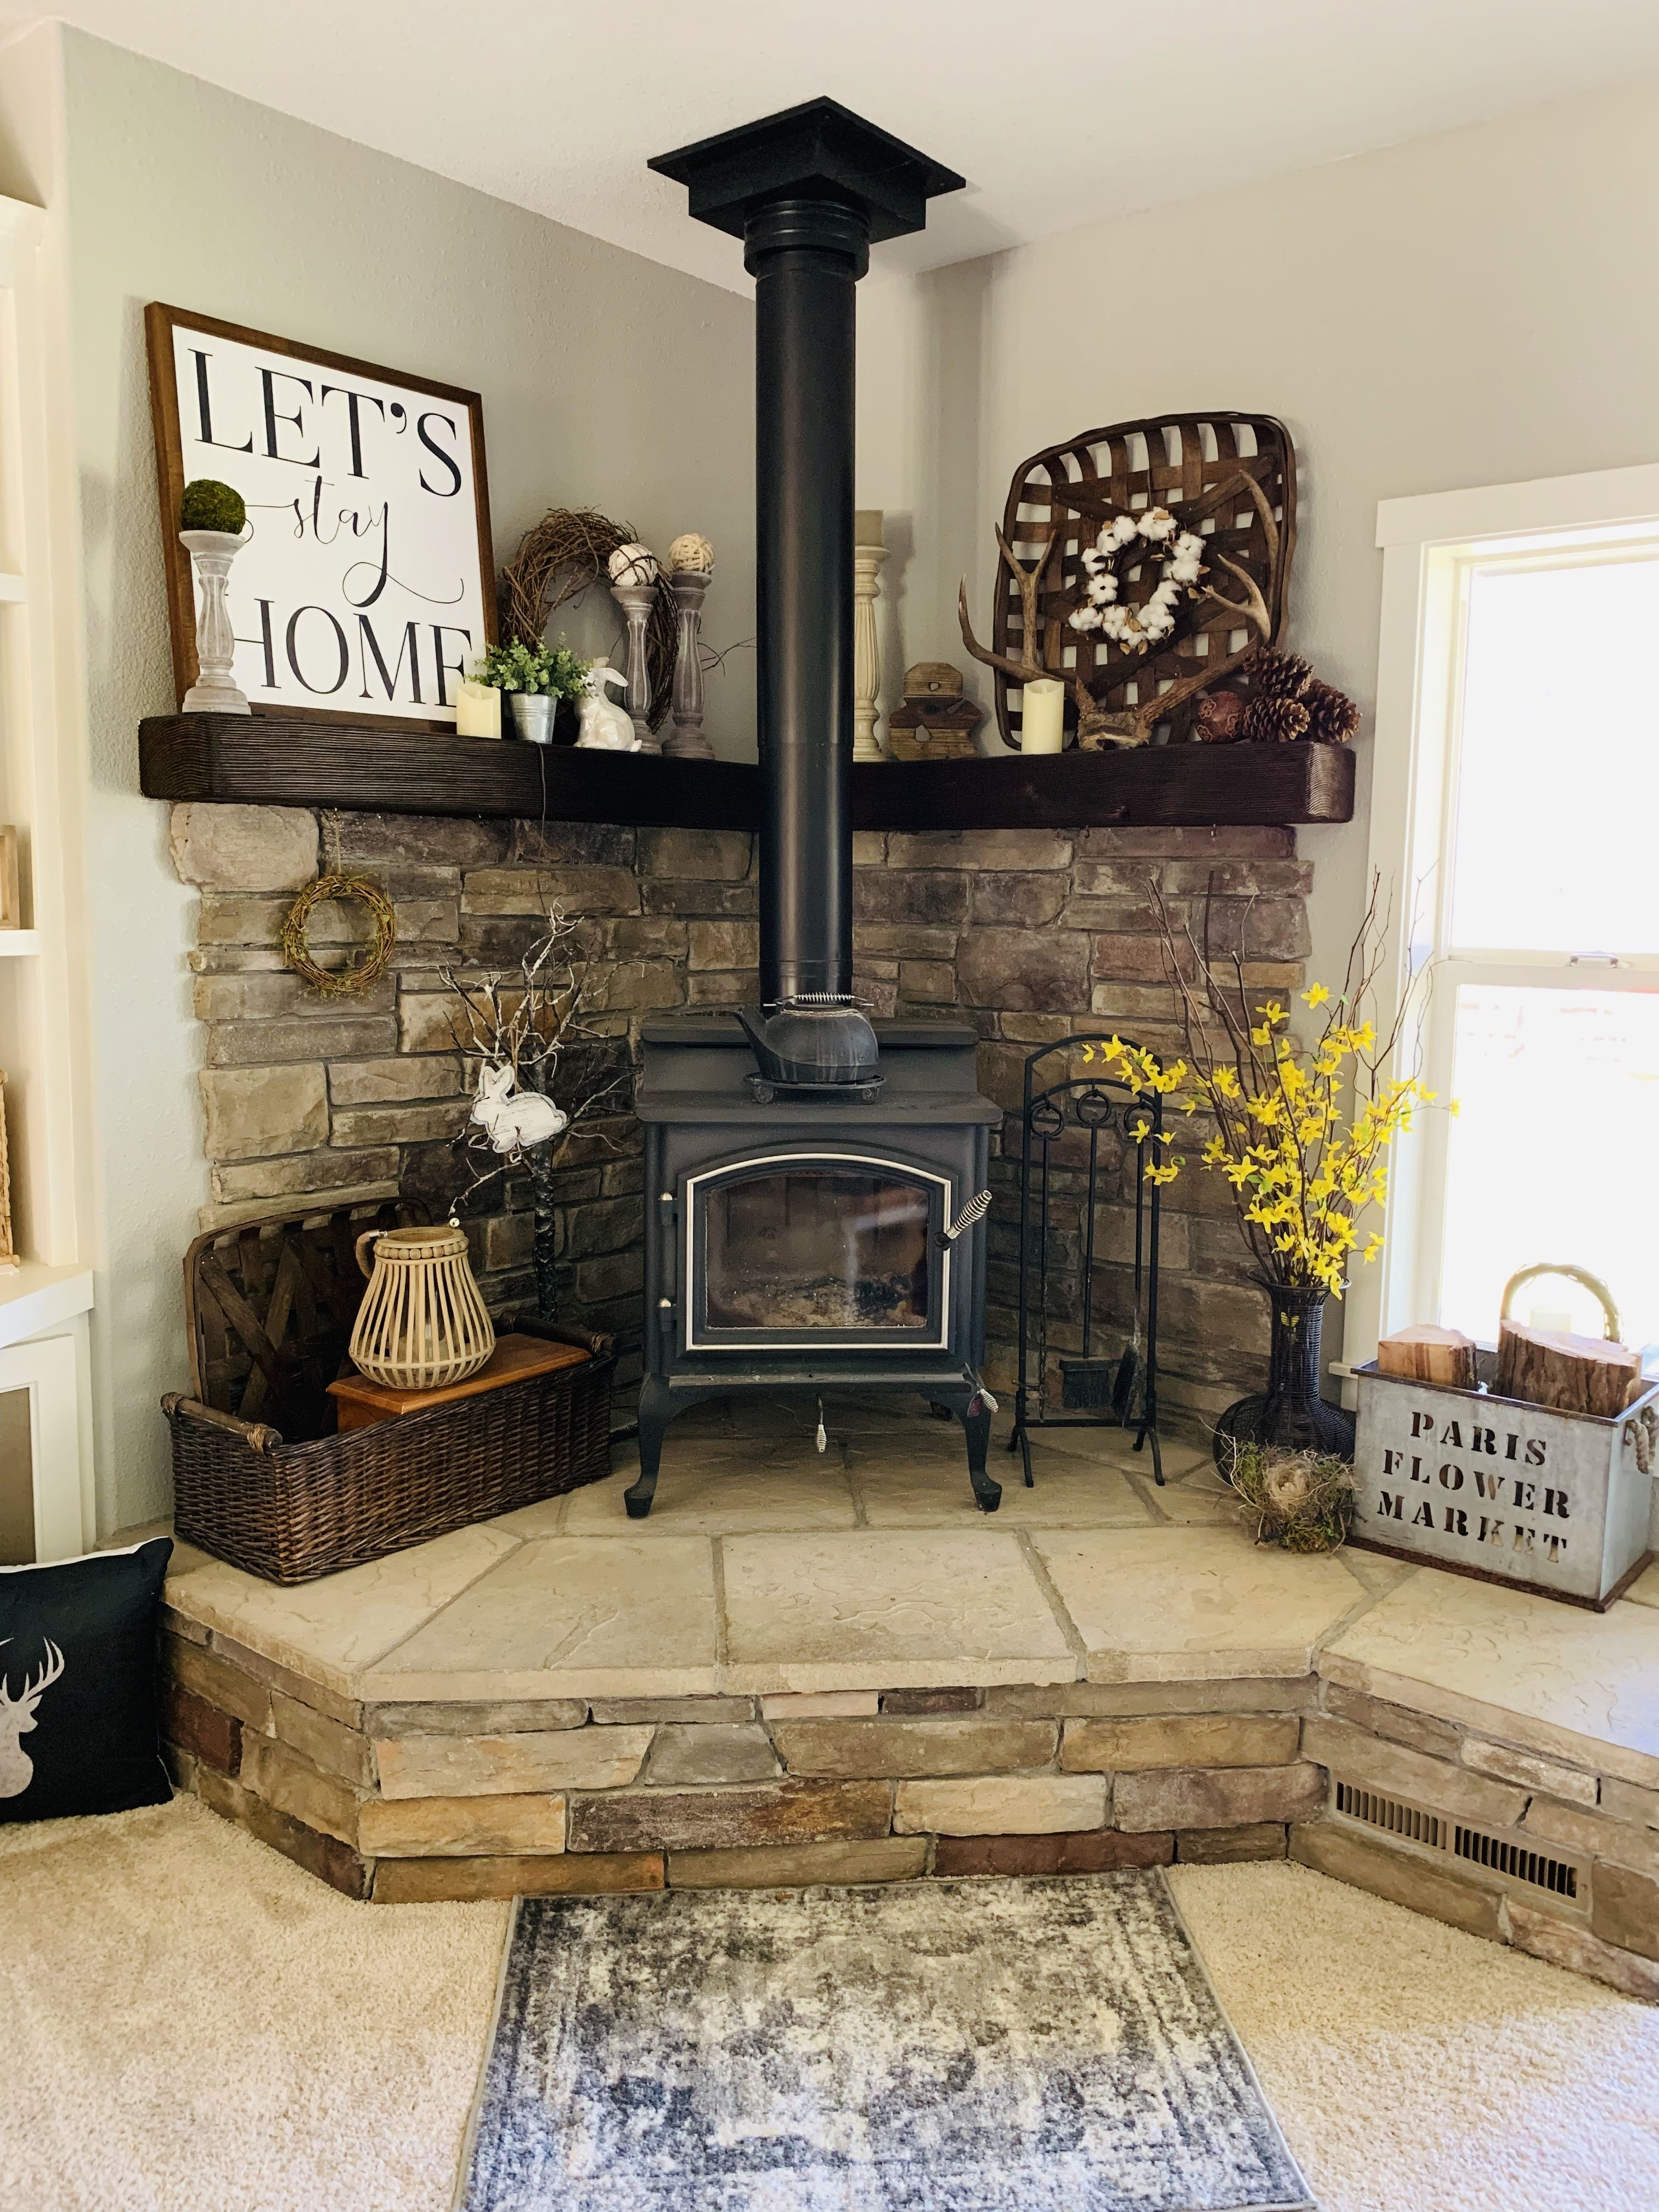 Corner Wood Stove Decor Wood Stove Decor Corner Wood Stove Stove Decor